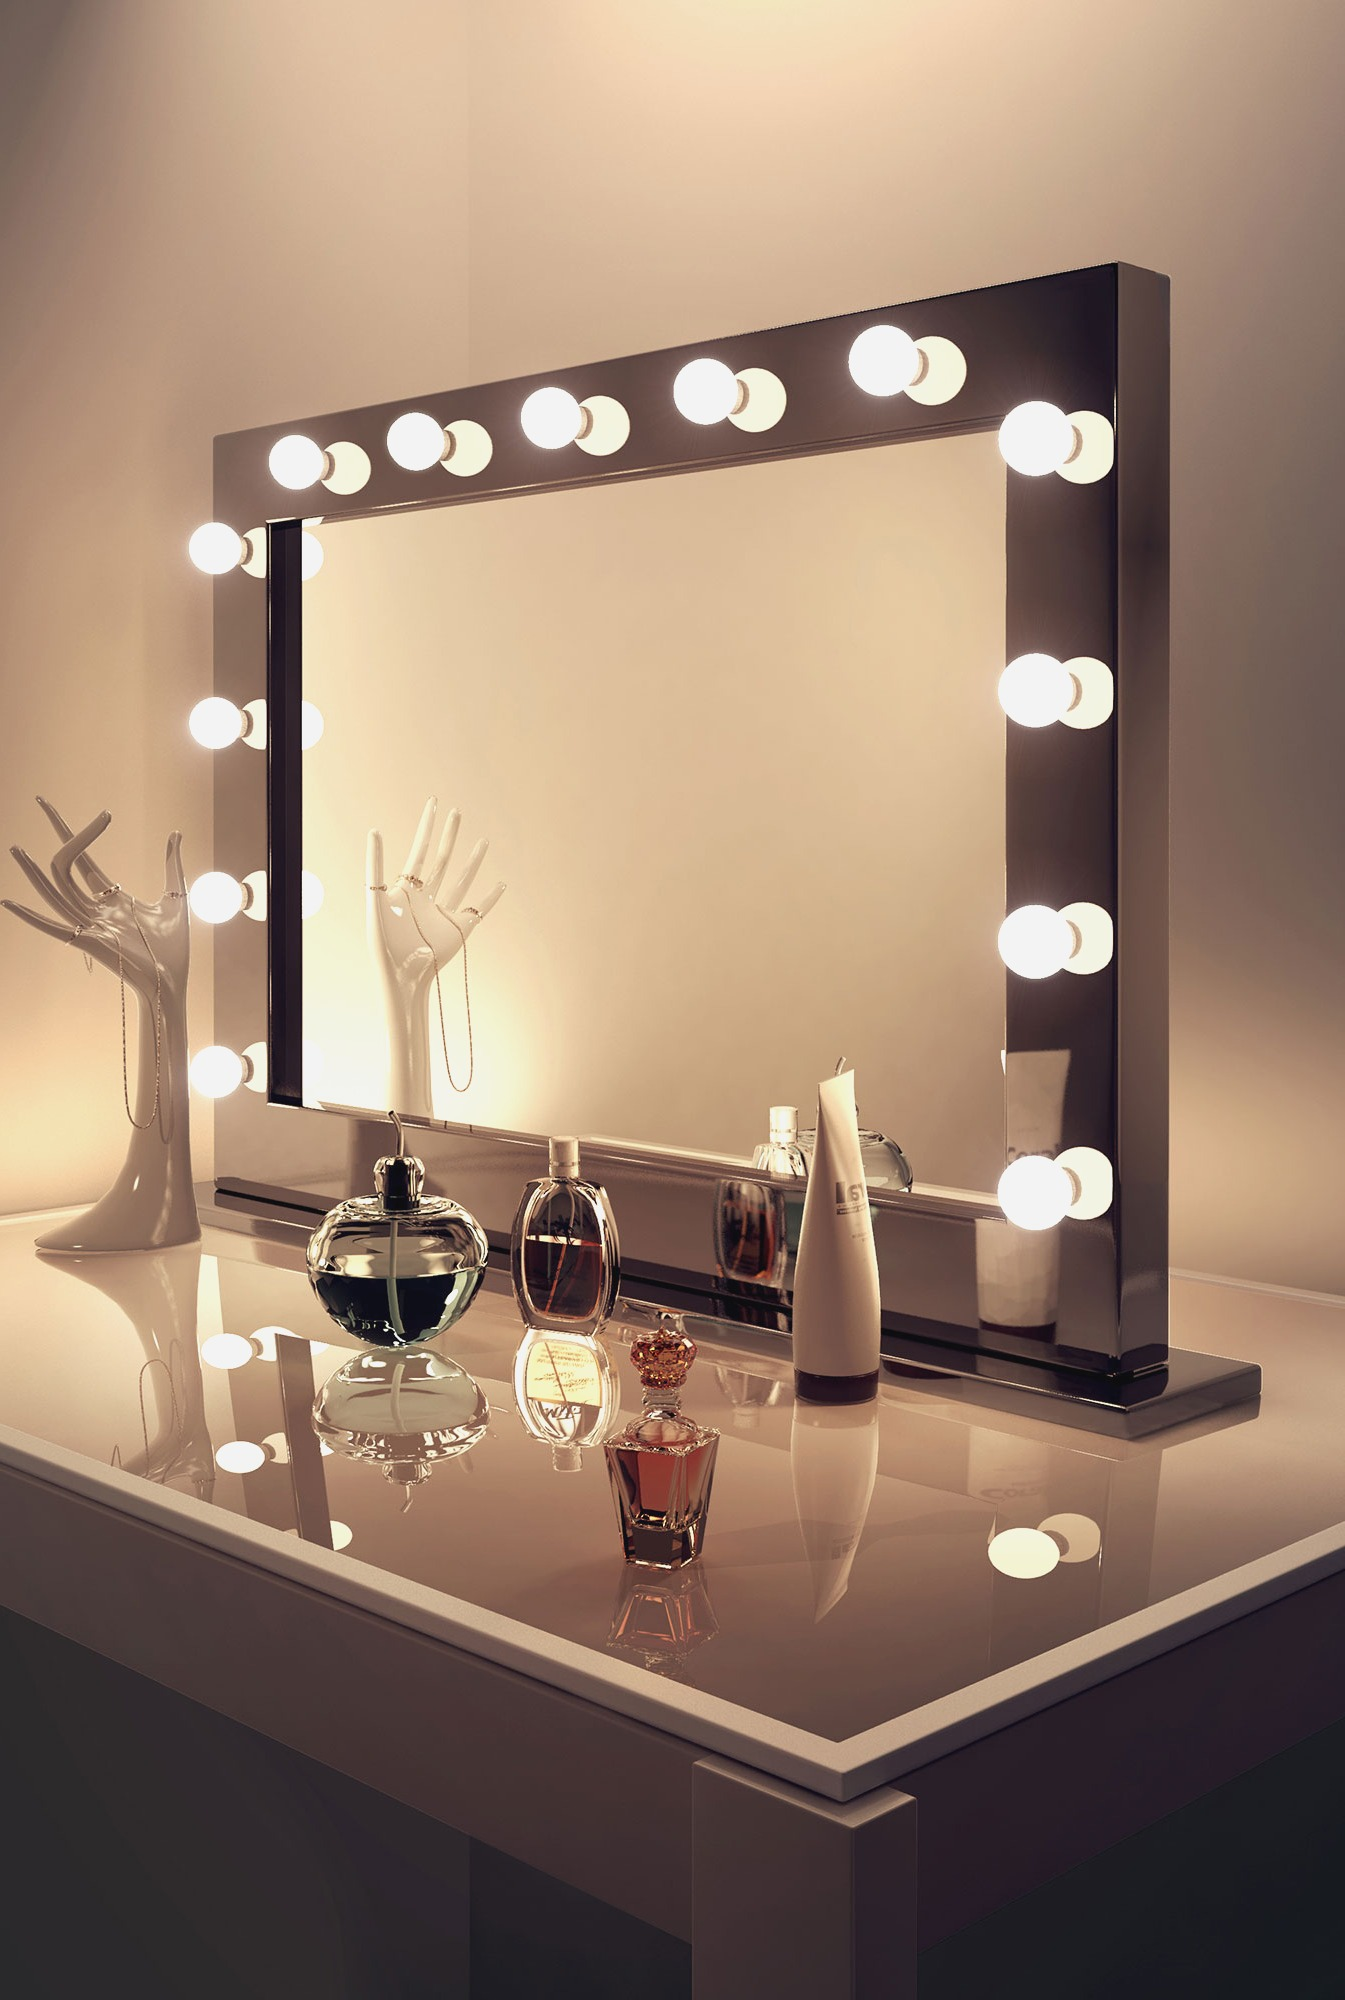 Makeup Vanity with Lighted Mirror | Light Up Makeup Vanity | Hollywood Vanity Mirror with Lights